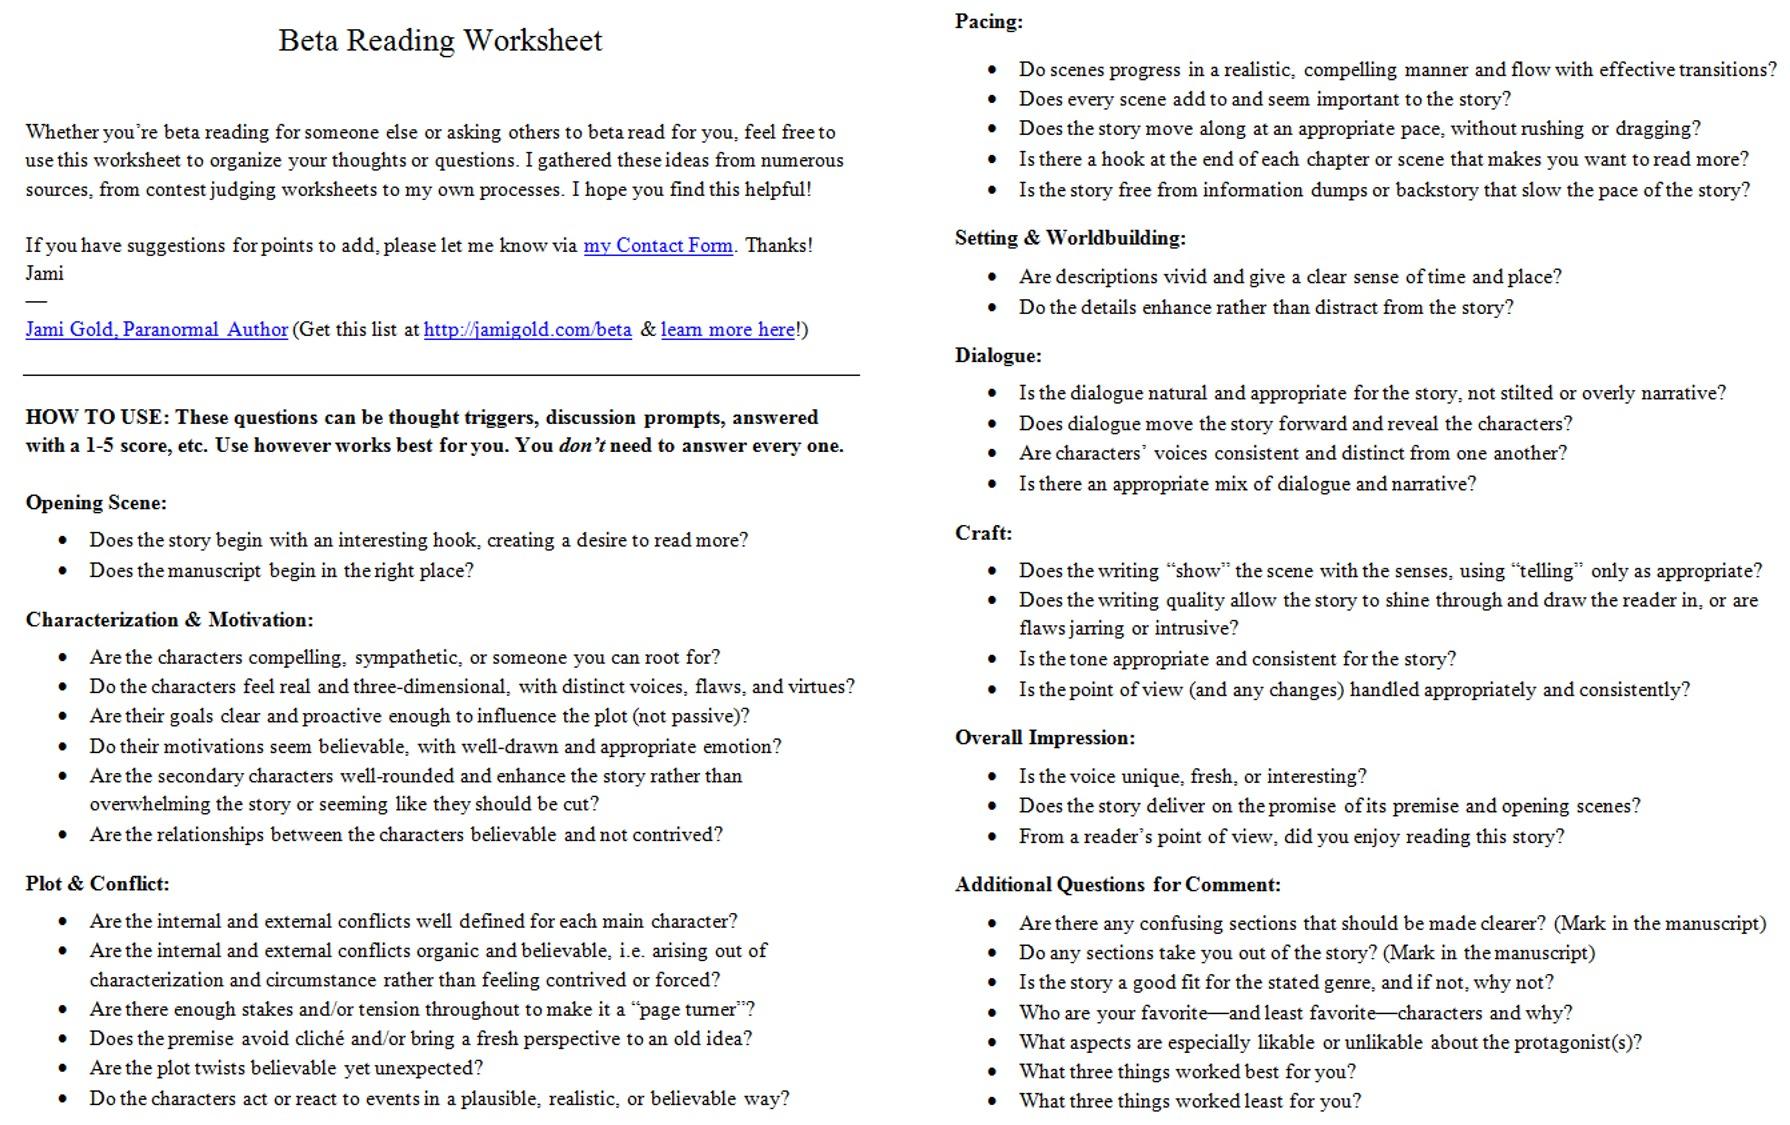 Weirdmailus  Gorgeous Worksheets For Writers  Jami Gold Paranormal Author With Likable Screen Shot Of The Twopage Beta Reading Worksheet With Charming Worksheets On Comparative Adjectives Also Overview Of Cellular Respiration And Fermentation Worksheet In Addition Free Math Worksheets For First Grade And Evaluating Piecewise Functions Worksheet As Well As Positive And Negative Statements Worksheet Additionally Hindi Worksheets For Class  On Grammar From Jamigoldcom With Weirdmailus  Likable Worksheets For Writers  Jami Gold Paranormal Author With Charming Screen Shot Of The Twopage Beta Reading Worksheet And Gorgeous Worksheets On Comparative Adjectives Also Overview Of Cellular Respiration And Fermentation Worksheet In Addition Free Math Worksheets For First Grade From Jamigoldcom